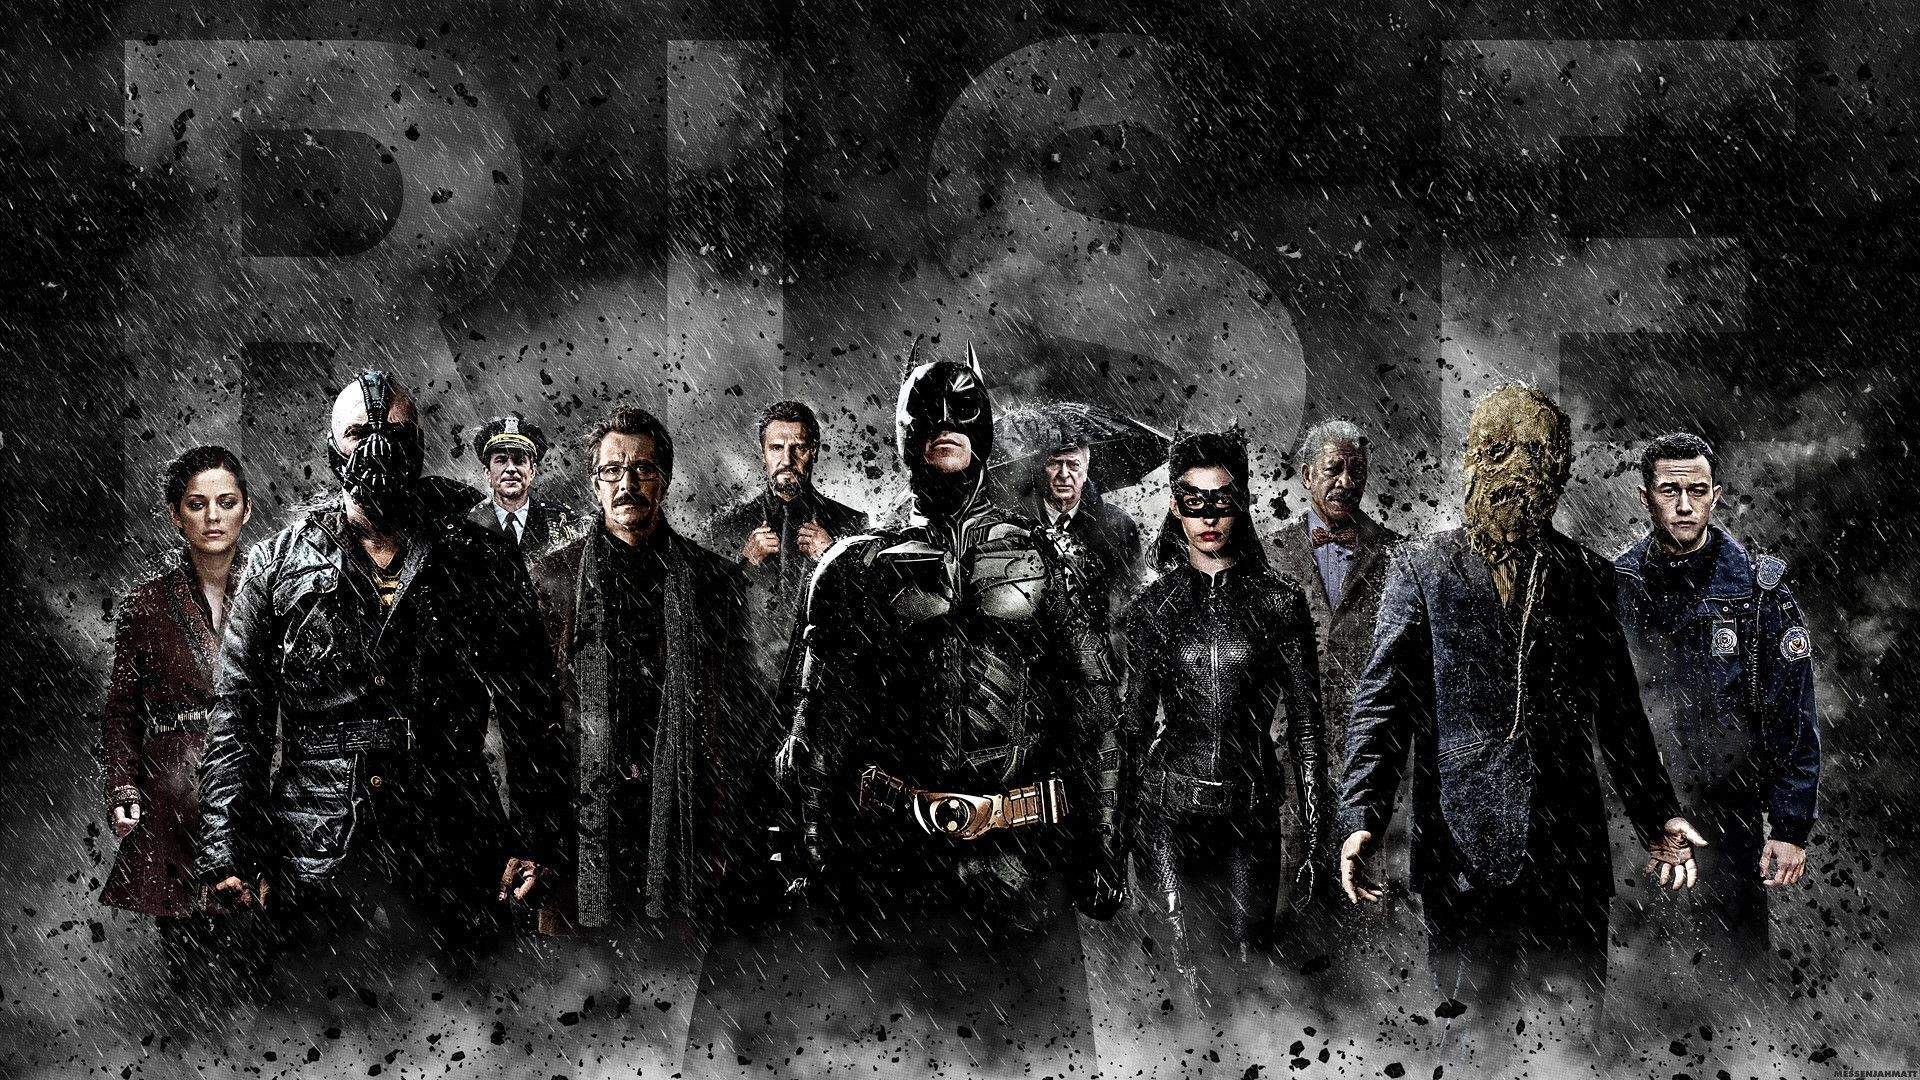 1920x1080 The Dark Knight Rises Wallpapers HD  - Wallpaper Cave